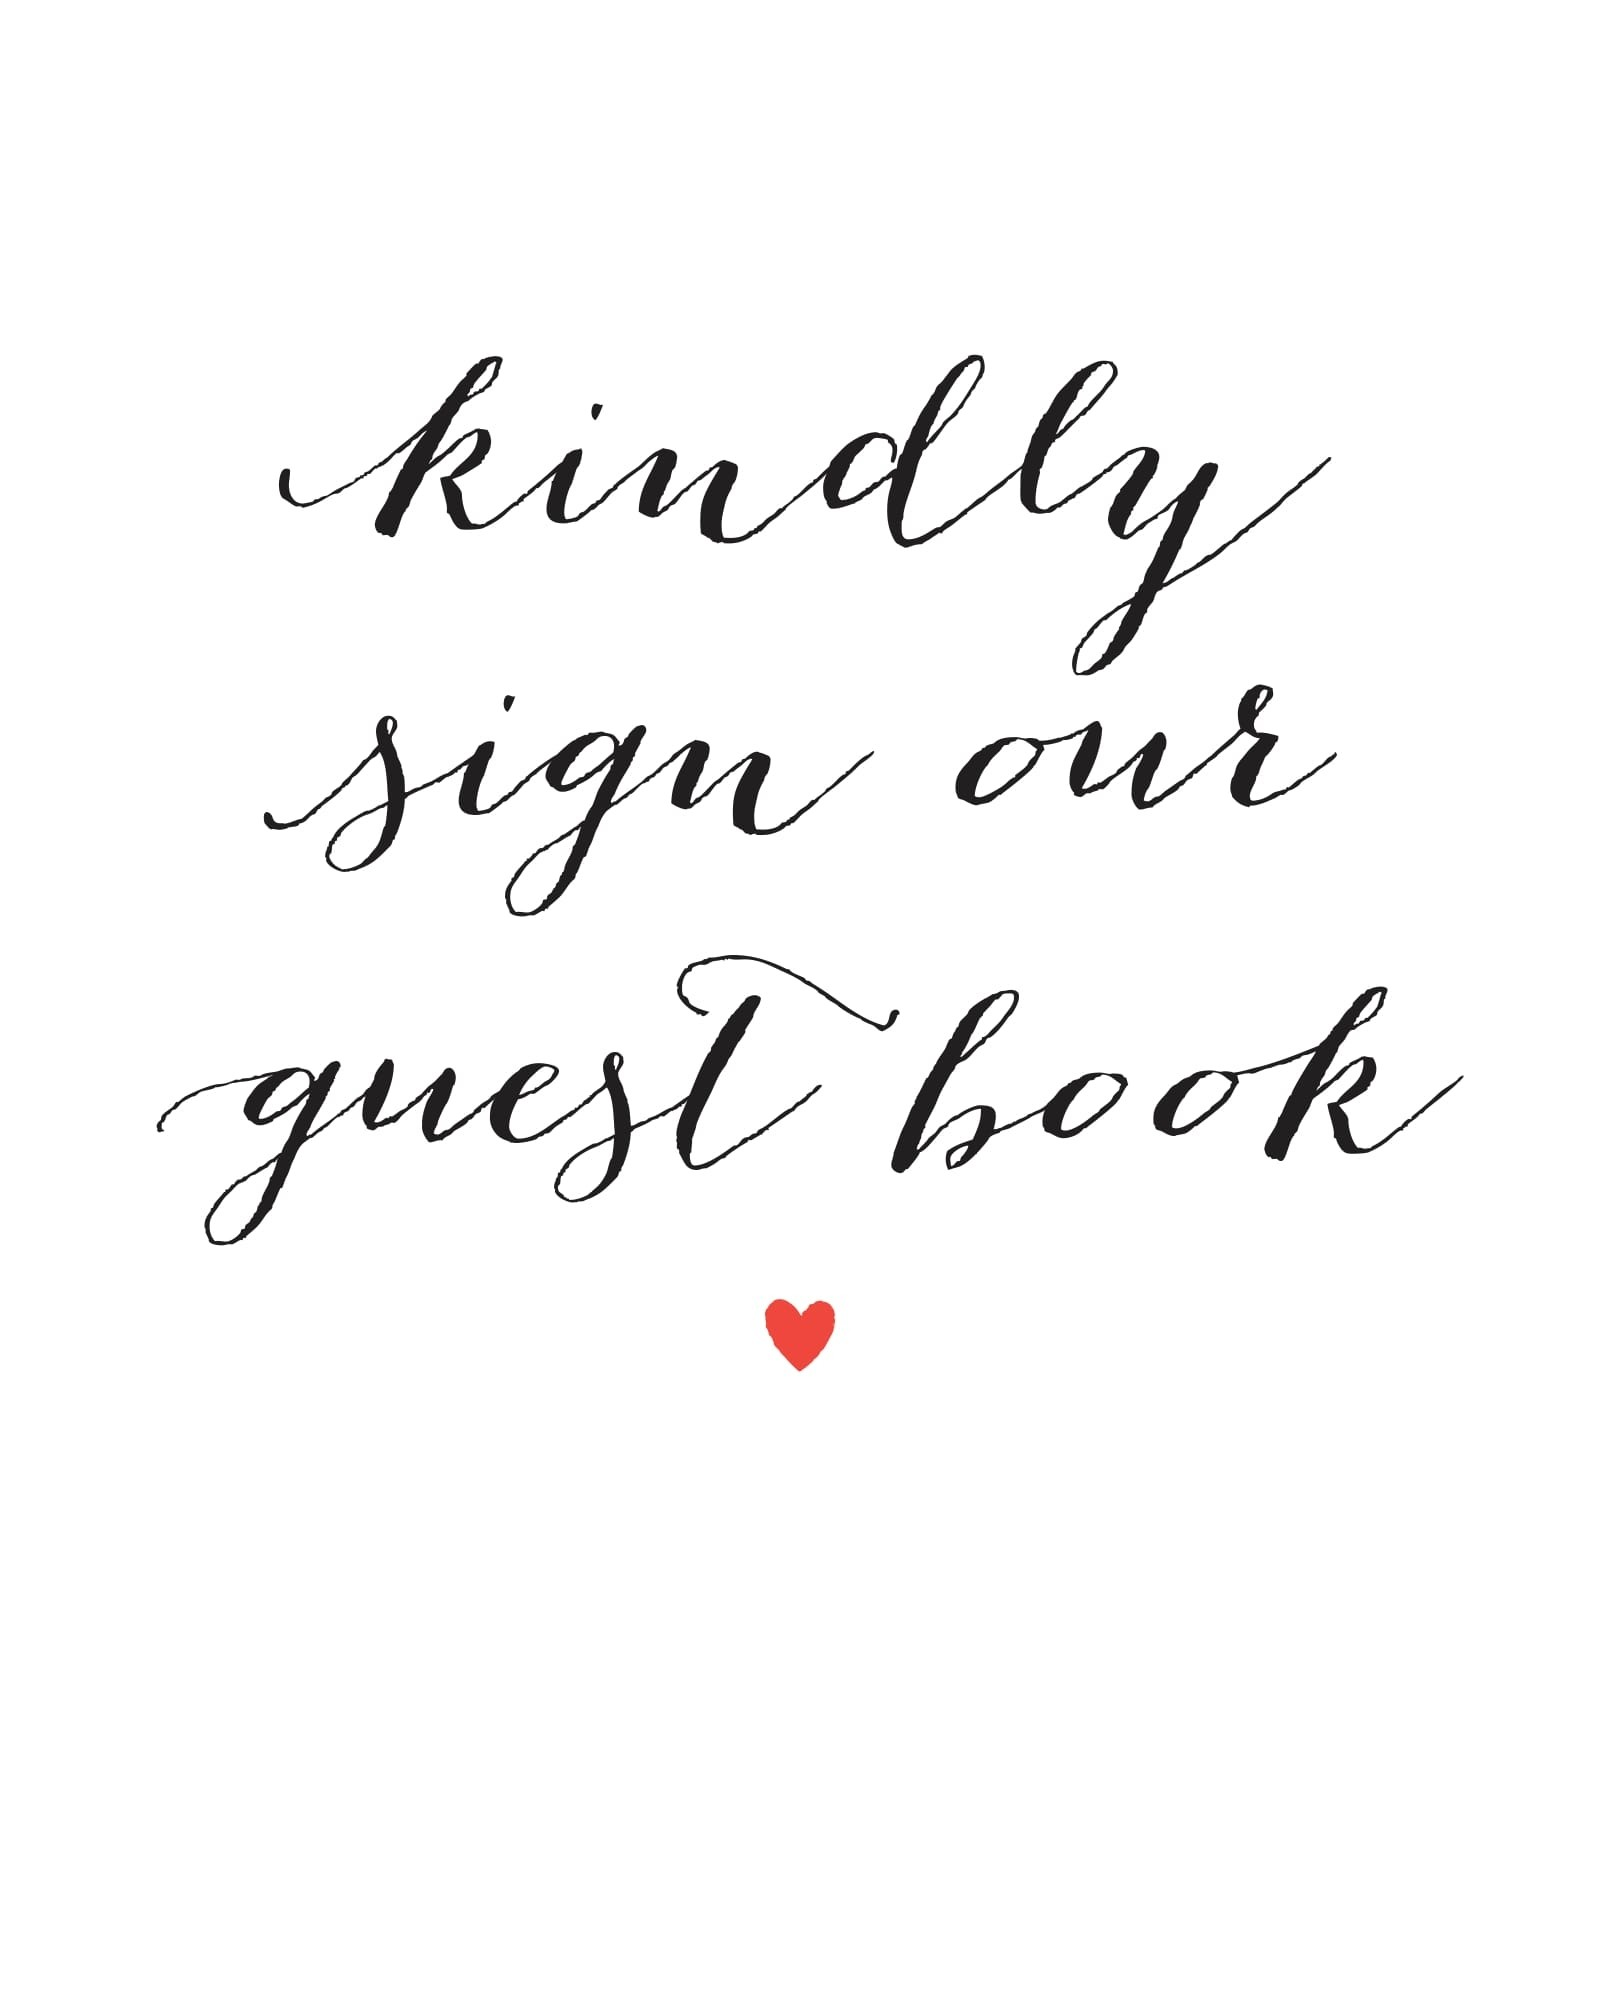 photo regarding Free Printable Sign Templates identify Marriage ceremony Signs or symptoms Printables and Do it yourself Templates of Signs or symptoms